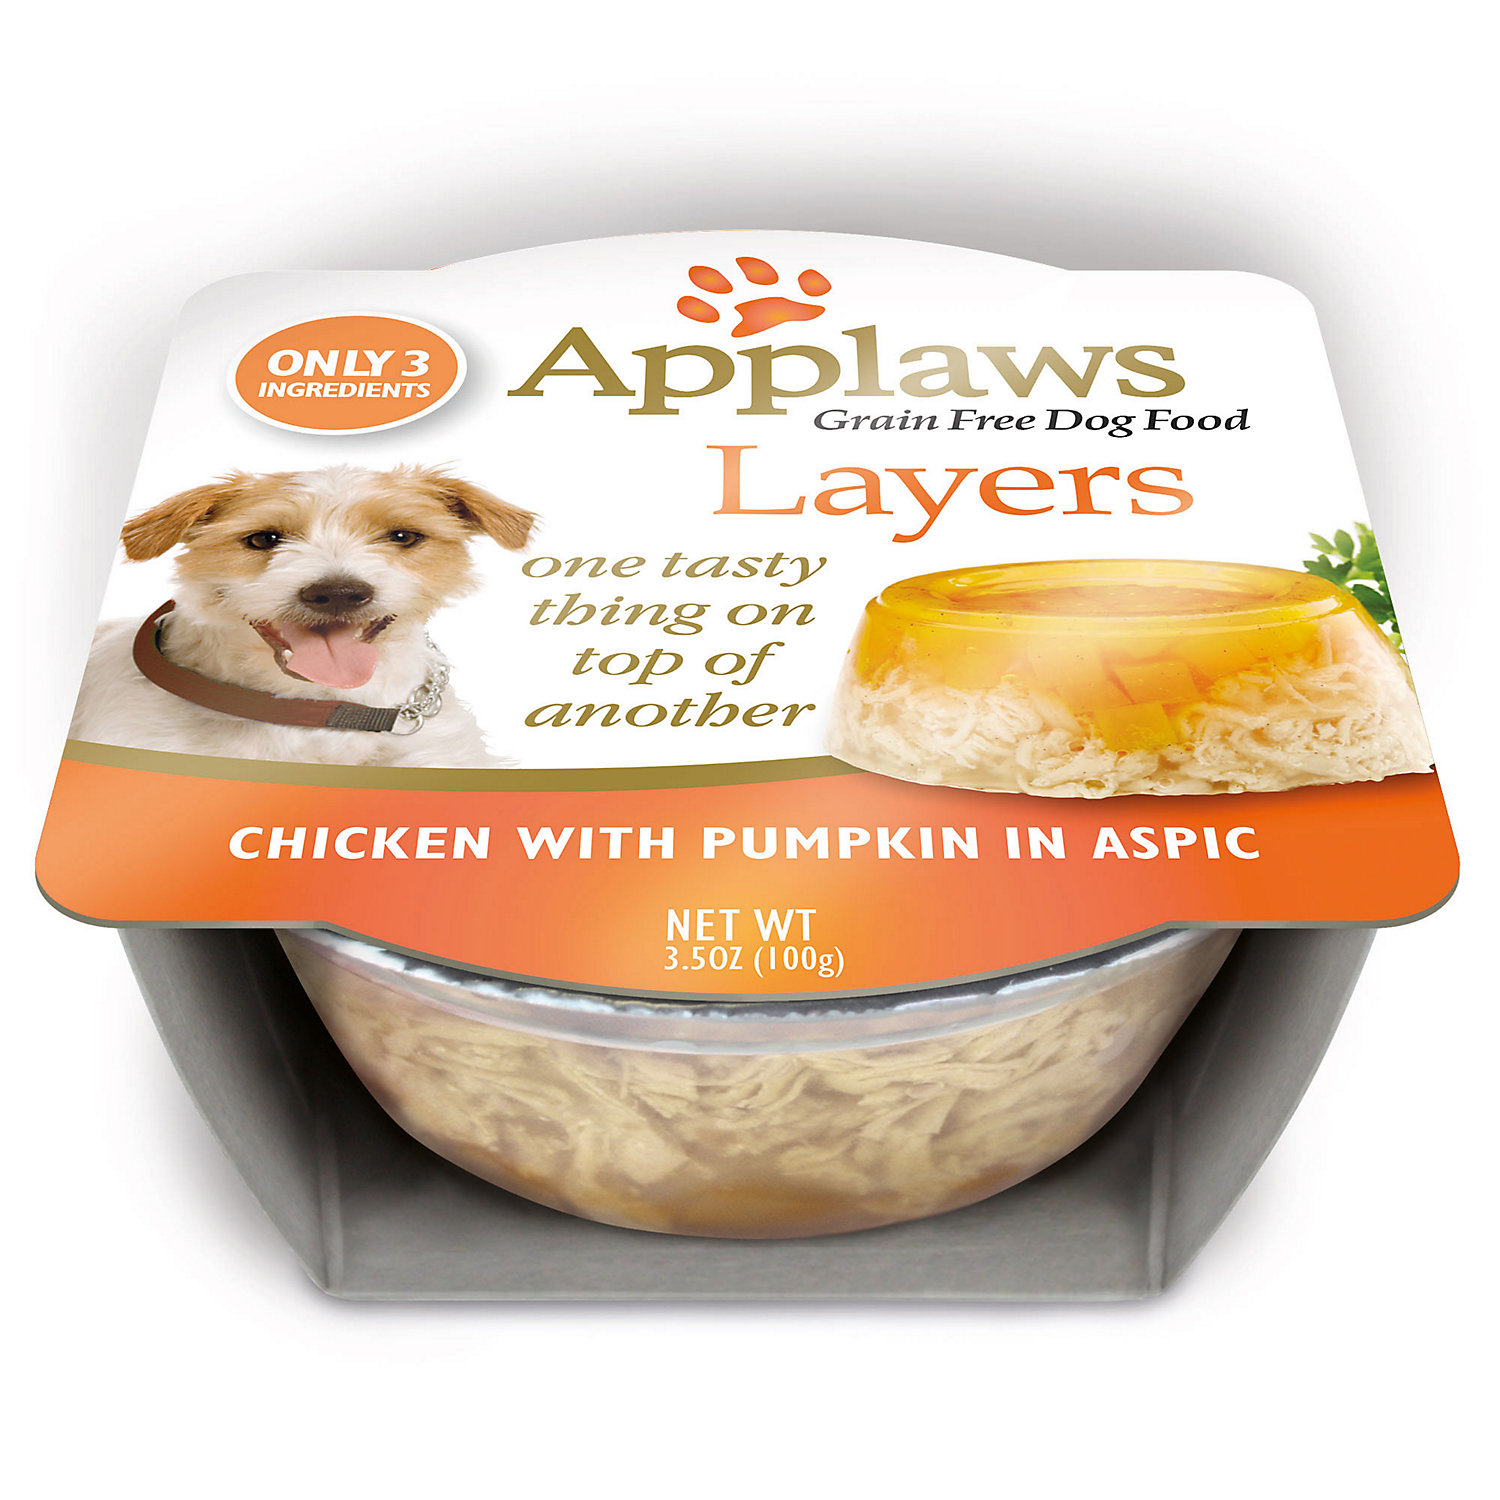 Applaws Limited Ingredient Layer Chicken With Pumpkin In Aspic Natural Dog Food, 3.5 Oz.